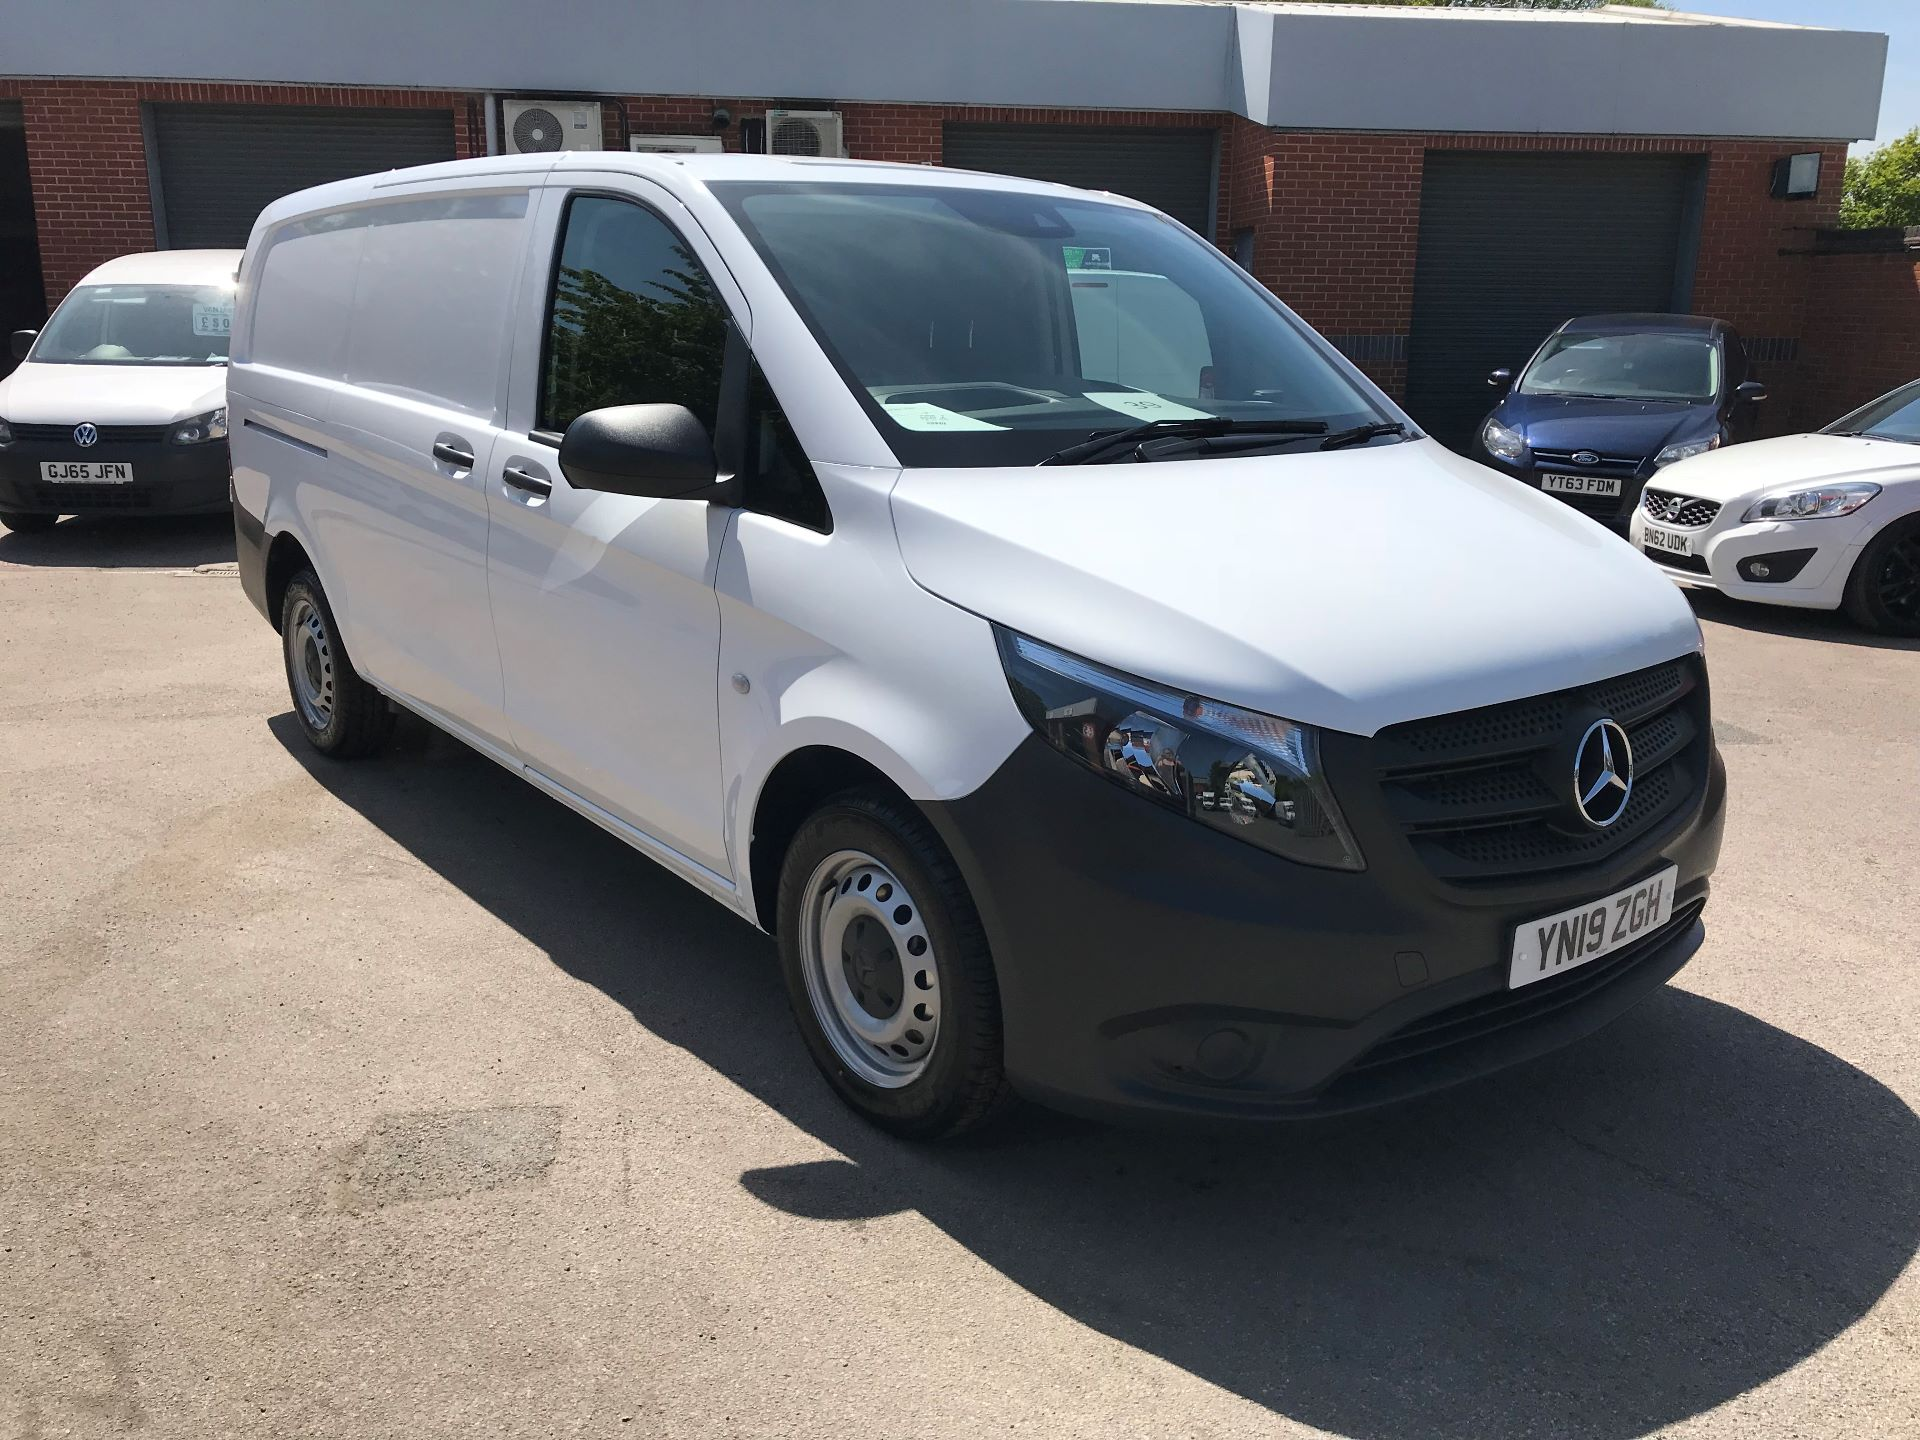 2019 Mercedes-Benz Vito 111CDI LWB 110PS EURO 6, AIR CON (YN19ZGH)